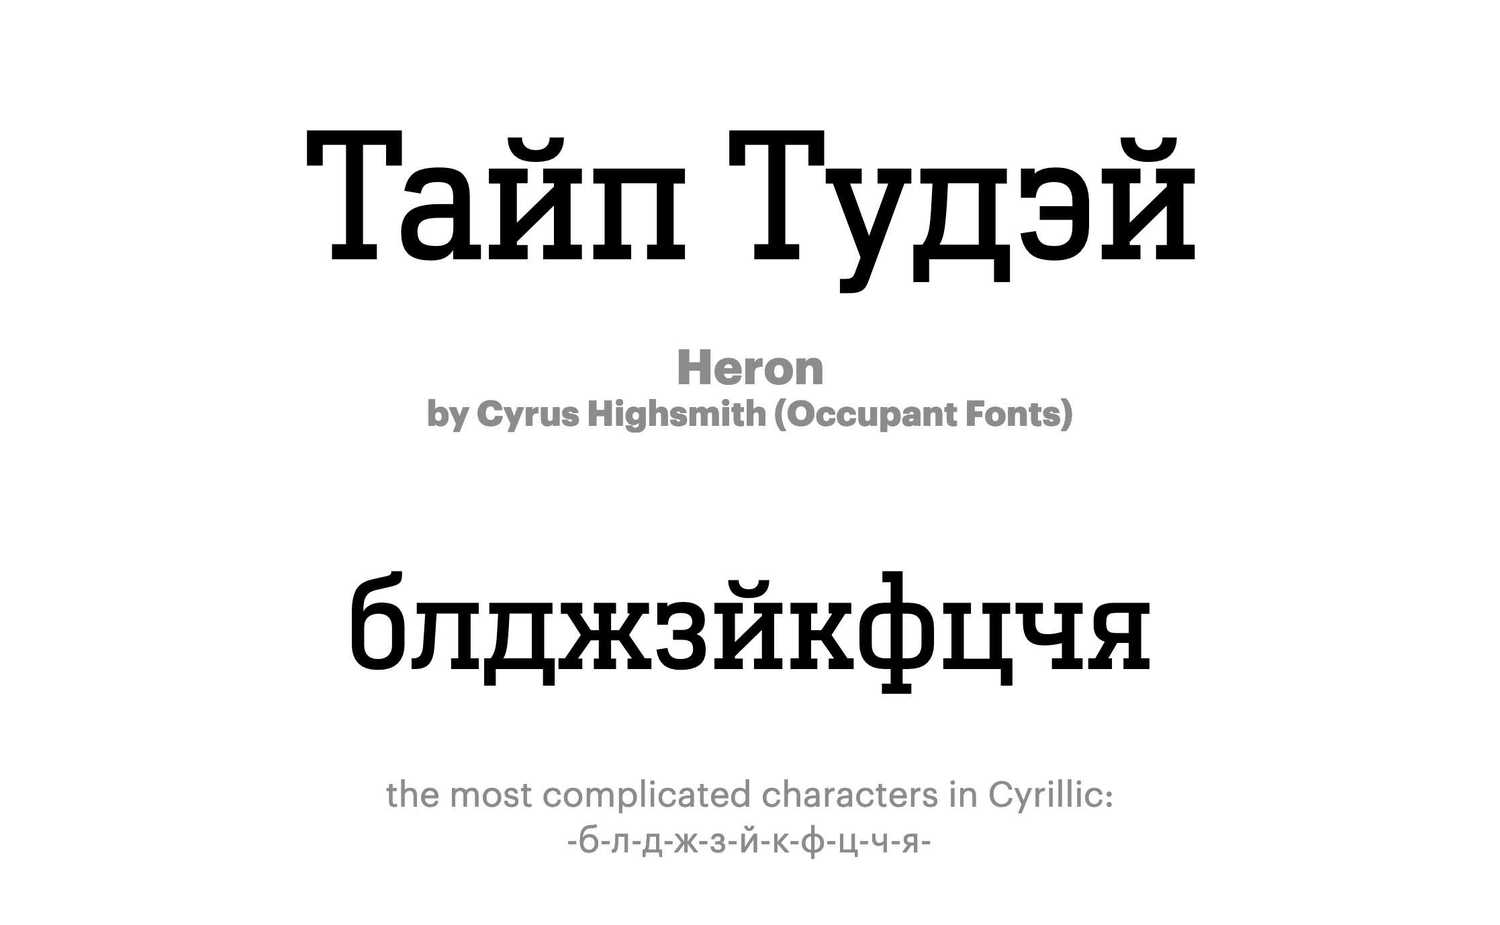 Heron-by-Cyrus-Highsmith-(Occupant-Fonts)